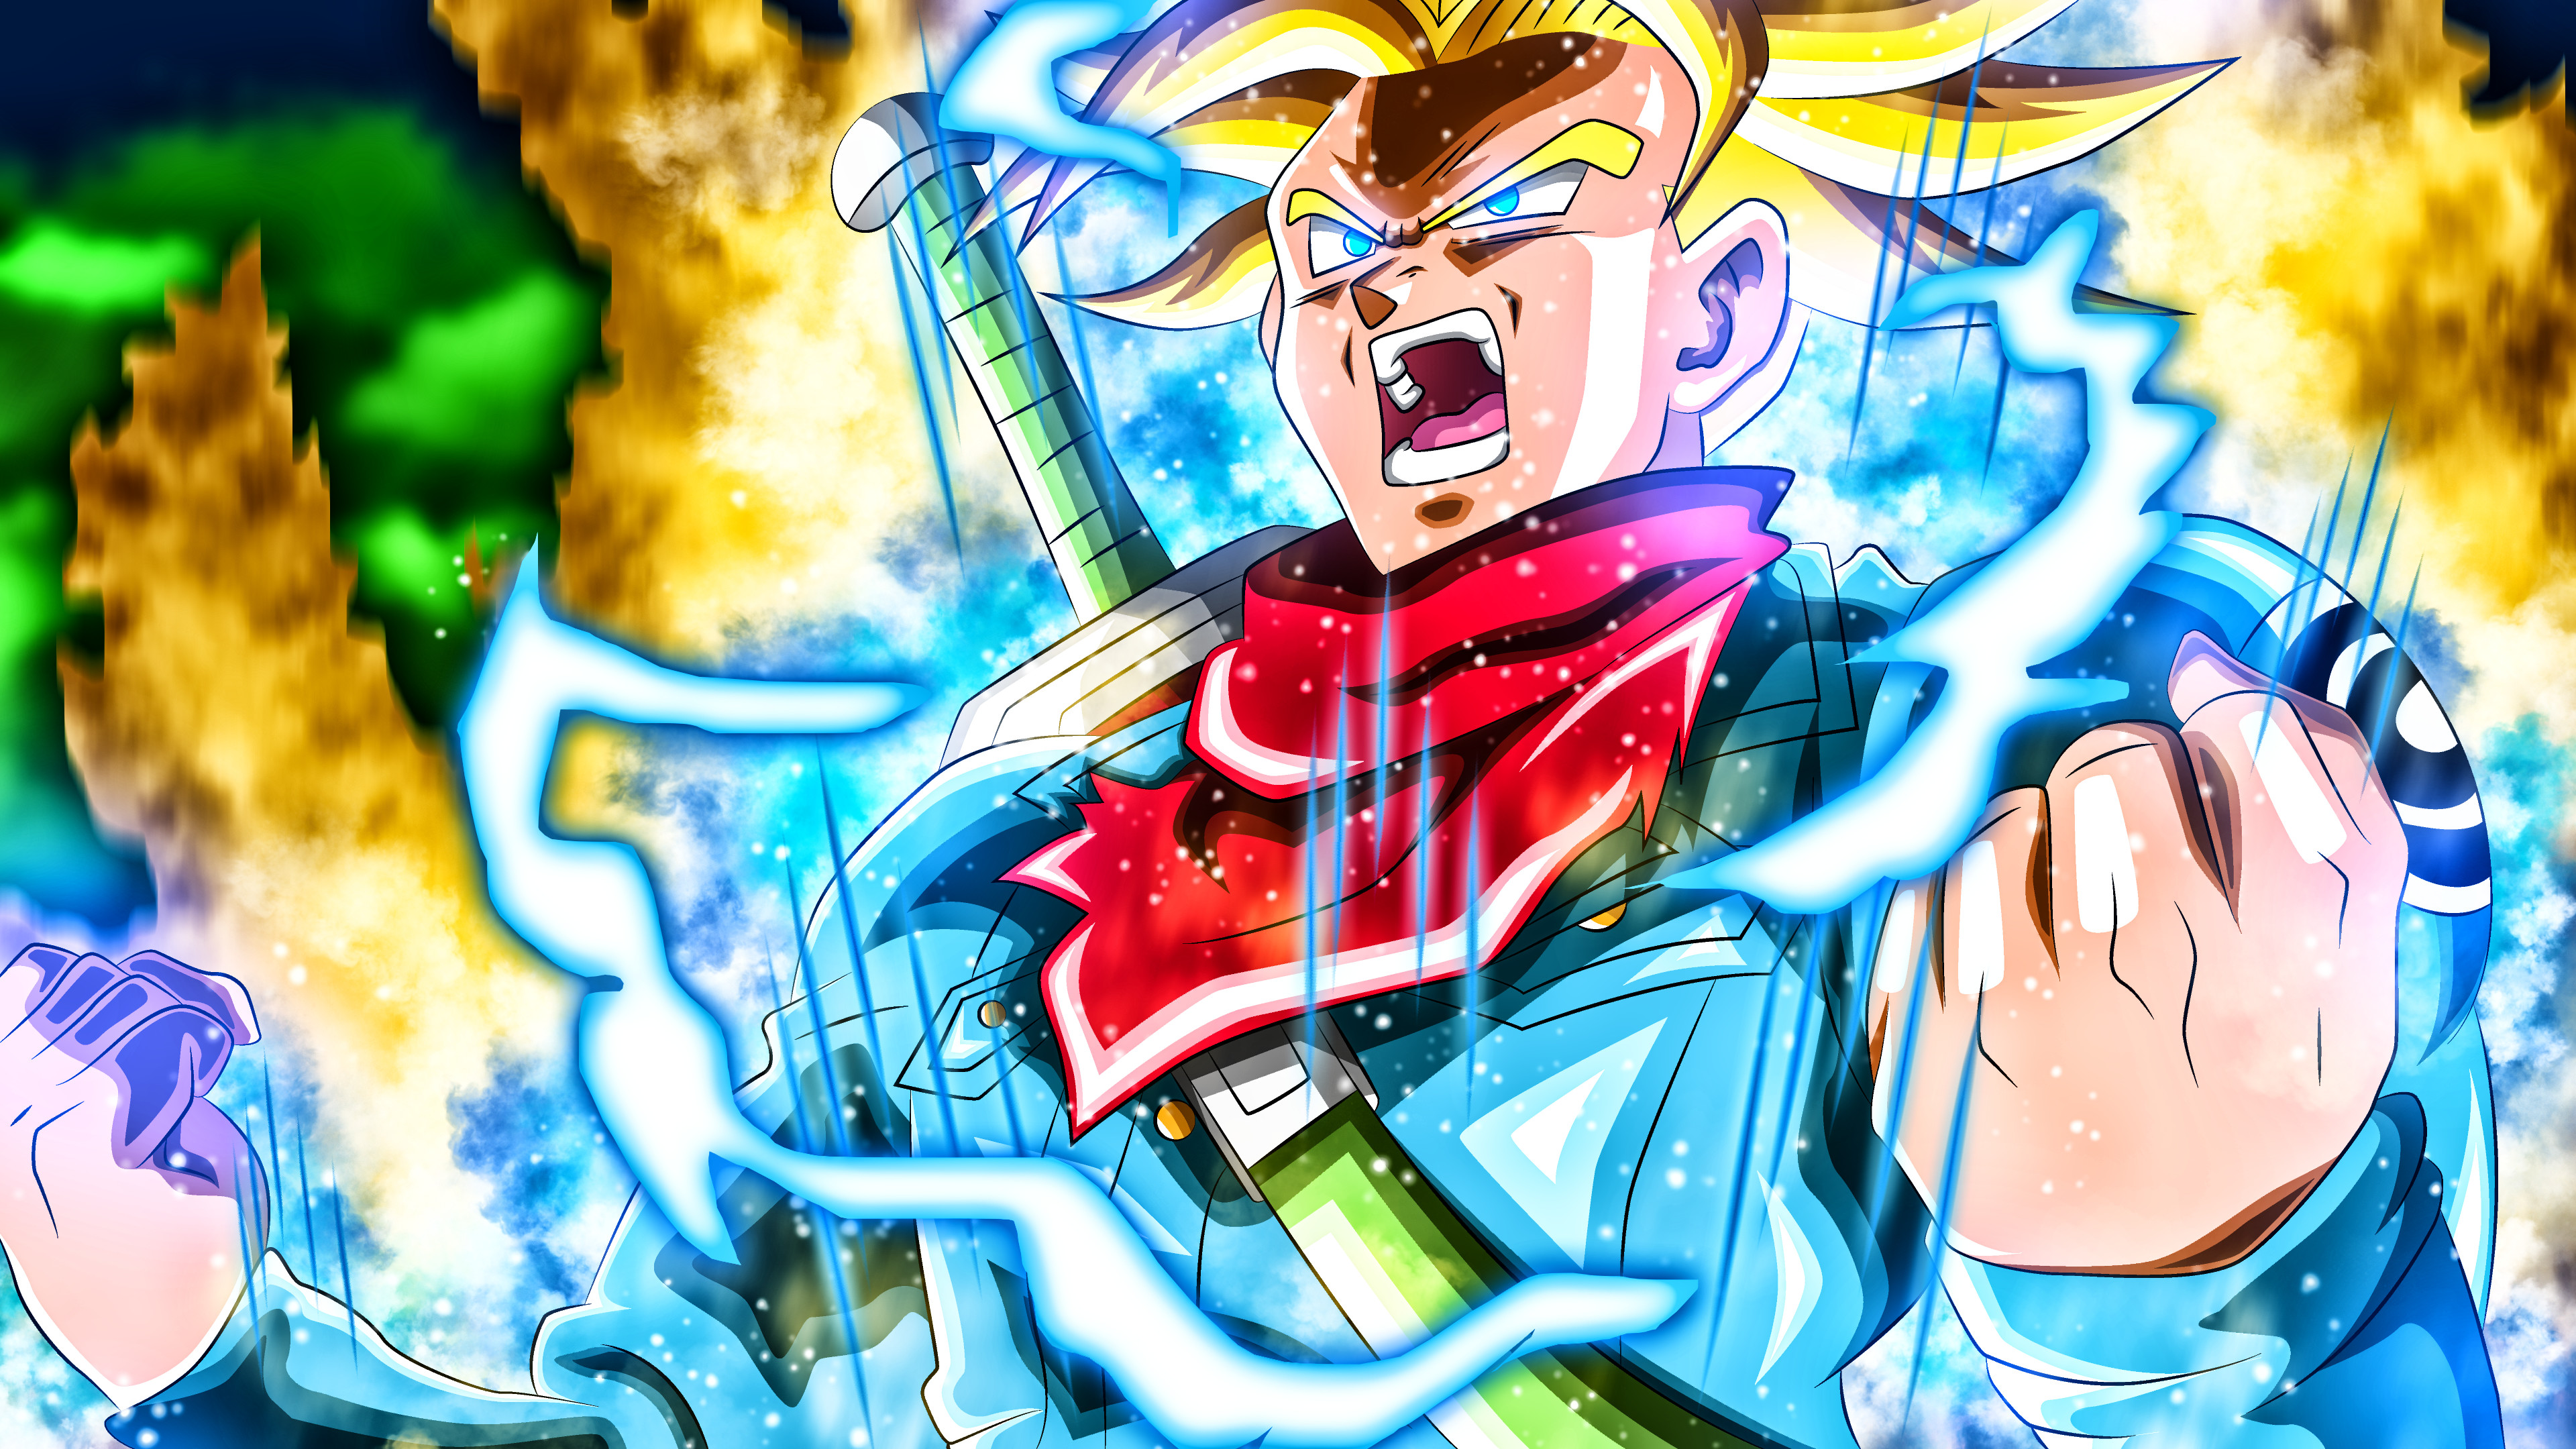 Future trunks wallpapers wallpapertag - Dragon ball super background music mp3 download ...